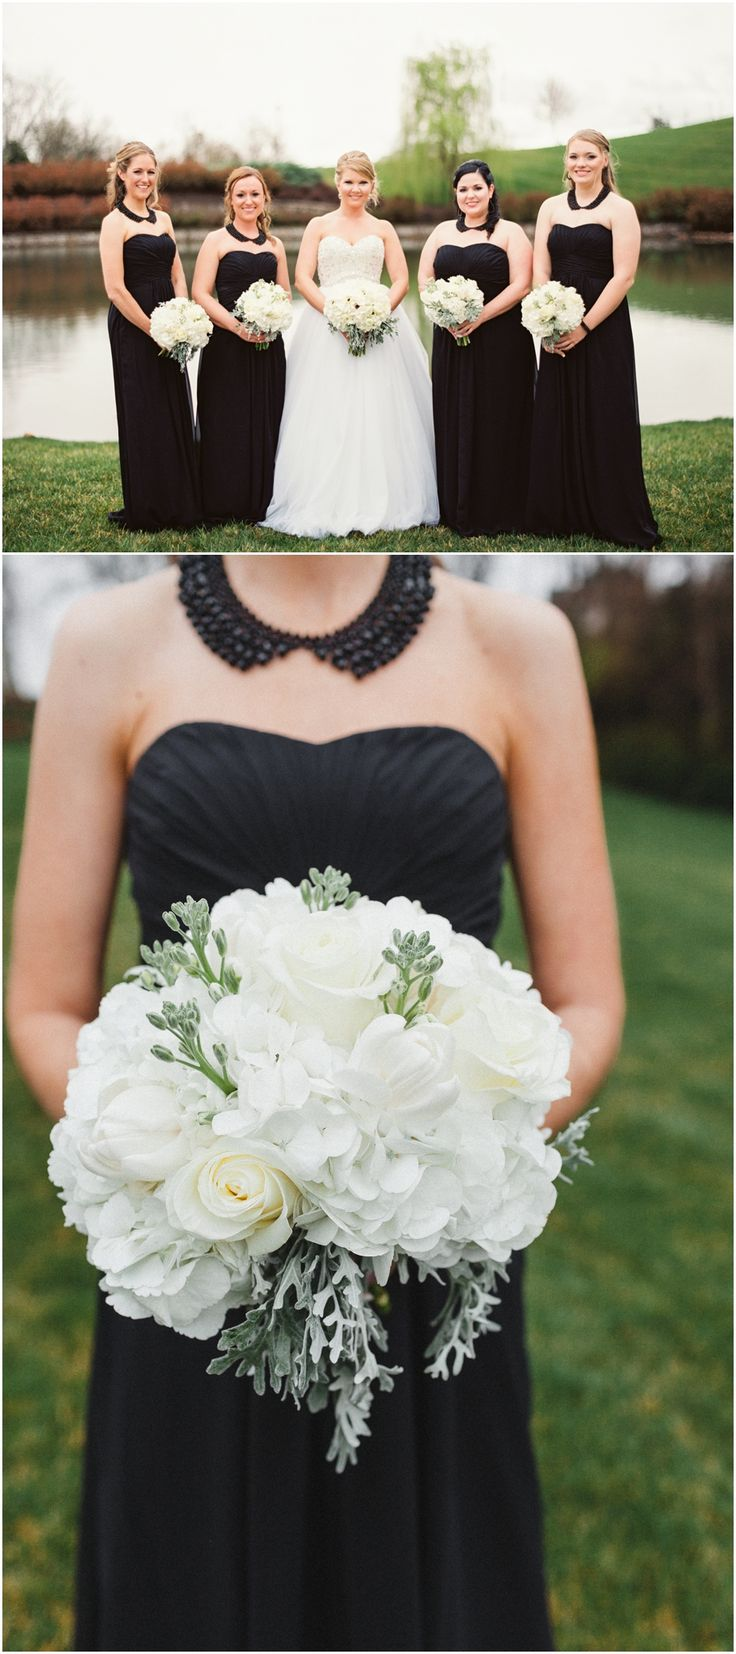 20 best bridgemore wedding knoxville tn images on for Wedding dresses knoxville tn